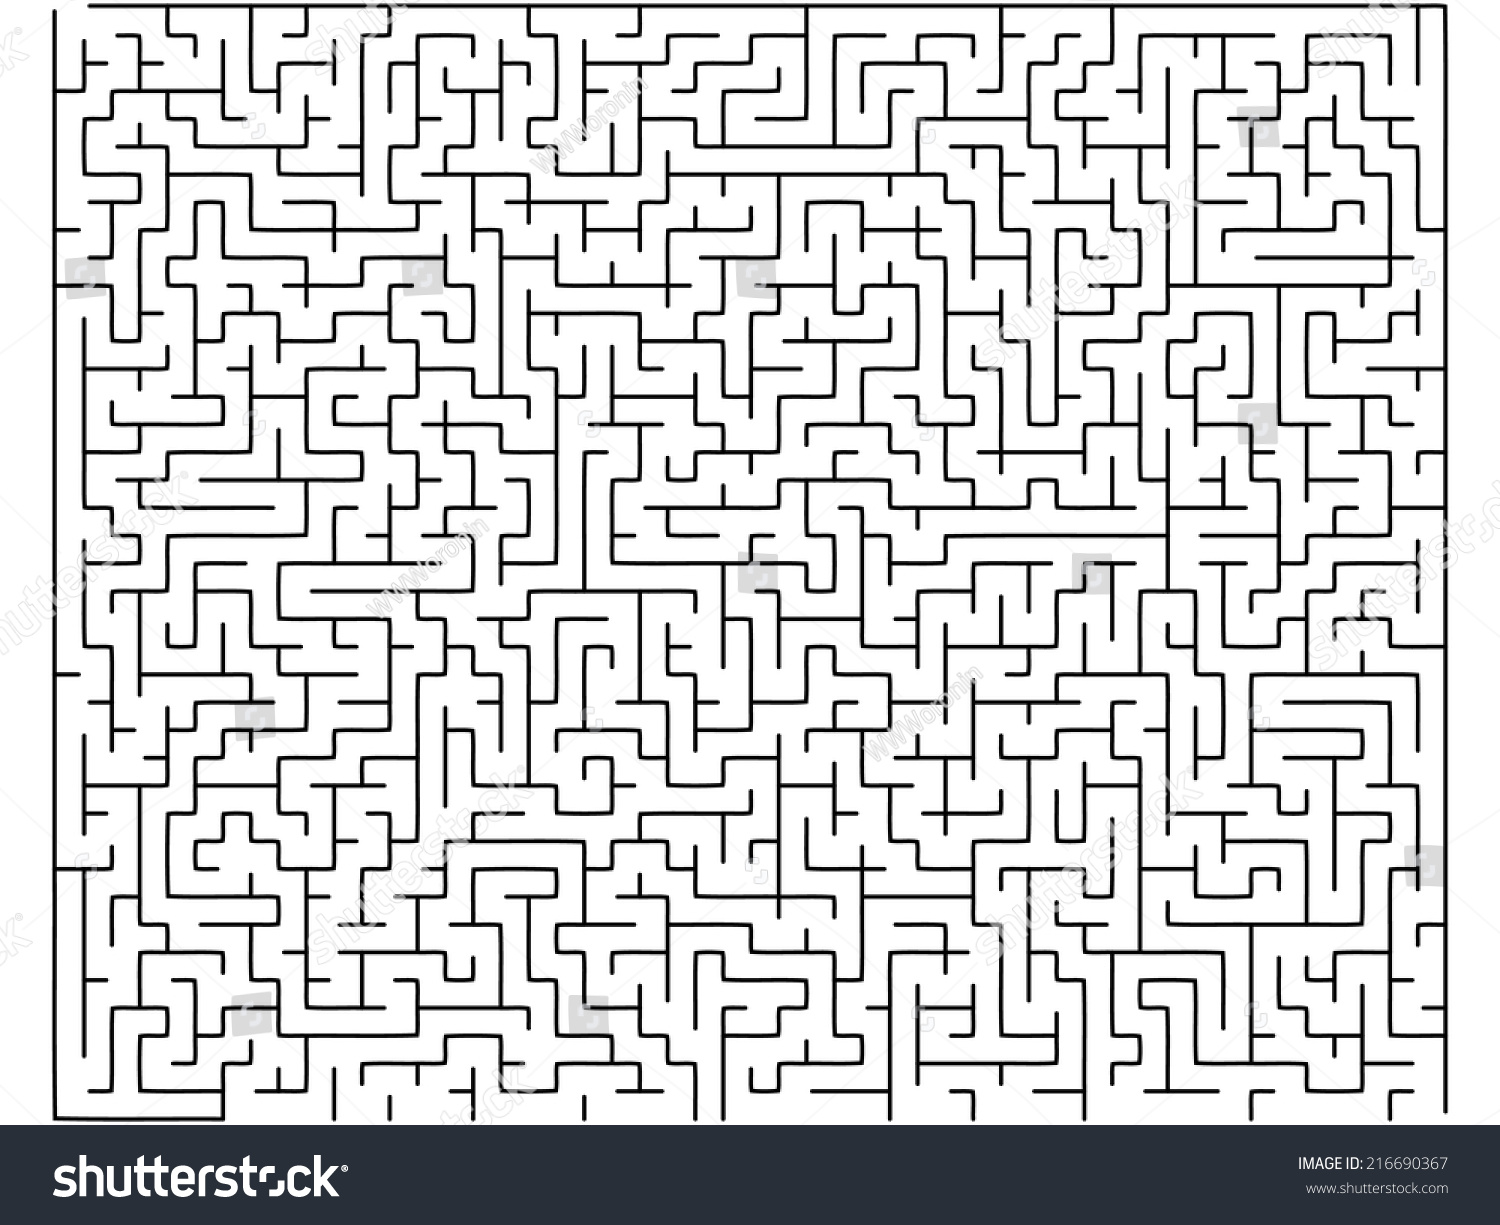 Vector labyrinth background, maze illustration isolated over white ...